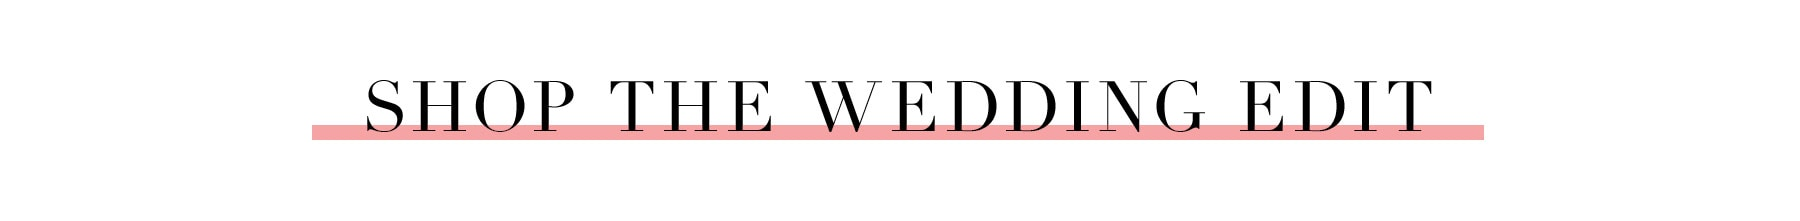 Shop The Wedding Edit